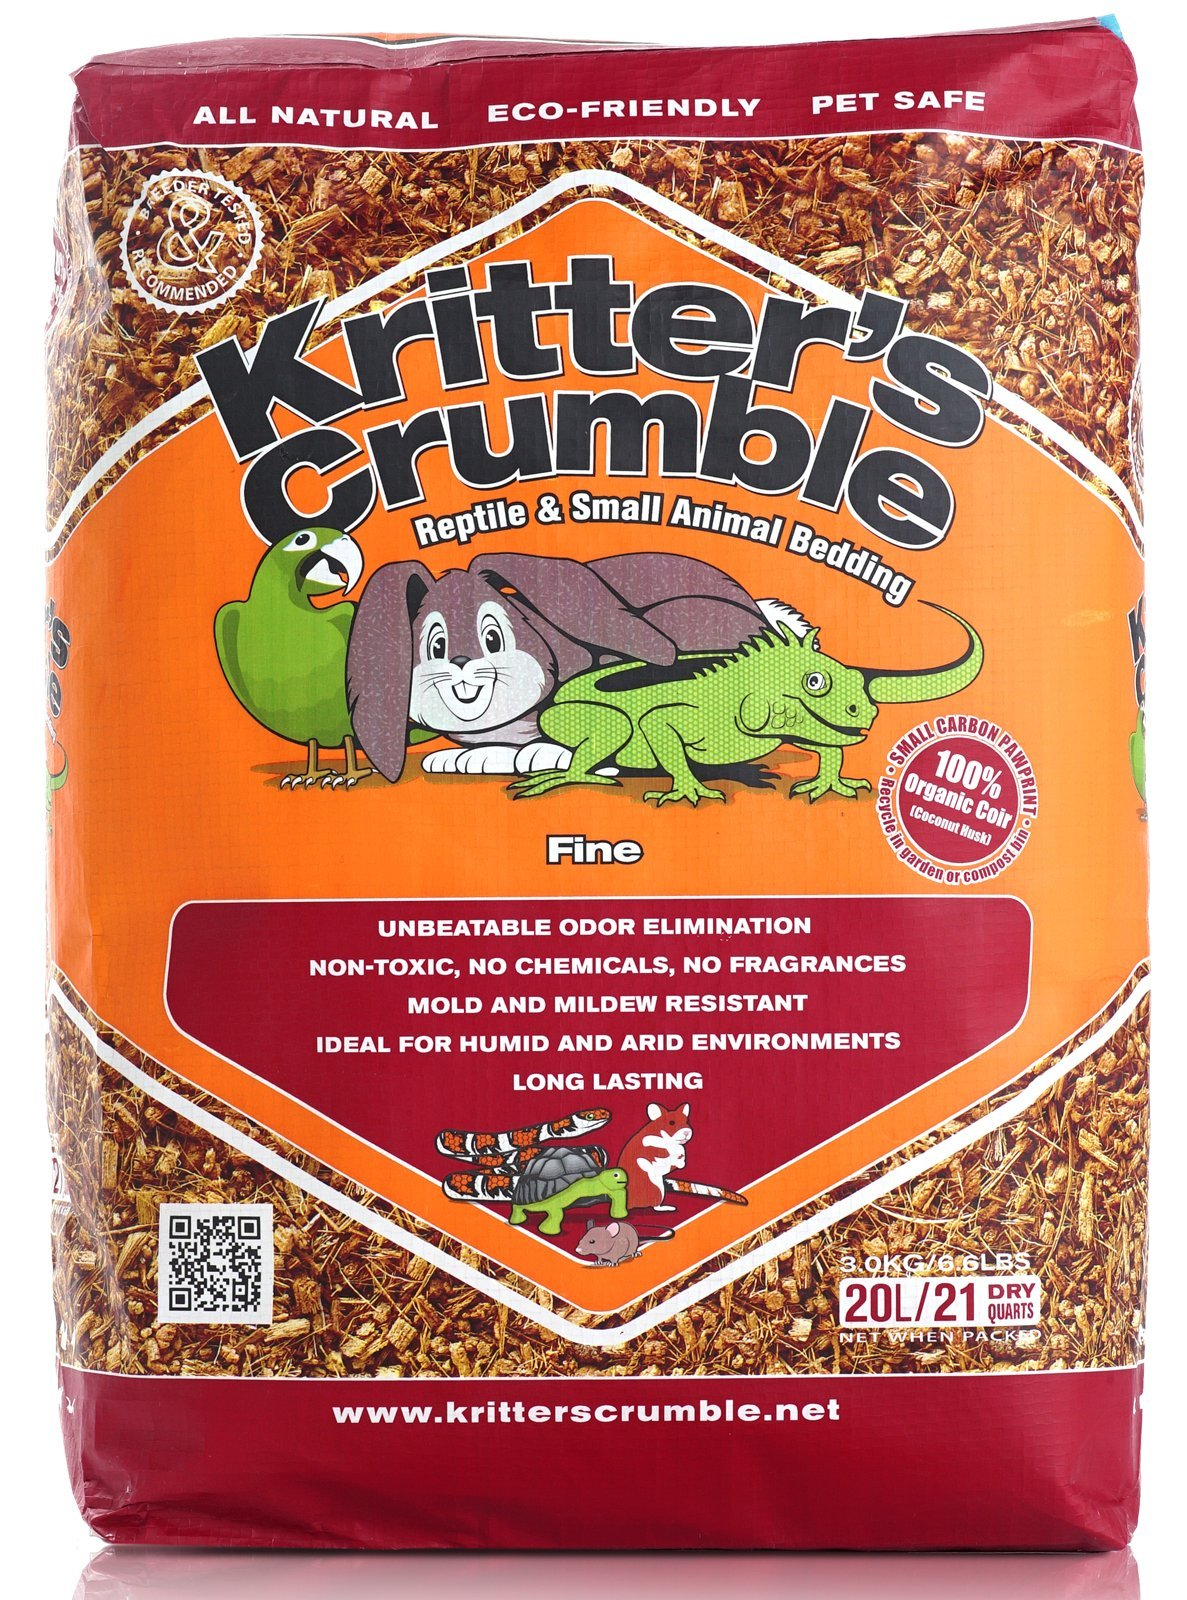 Kritter's Crumble All Natural Coconut Husk Fiber Reptile Substrate and Small Animal Bedding - Fine, 21 quarts